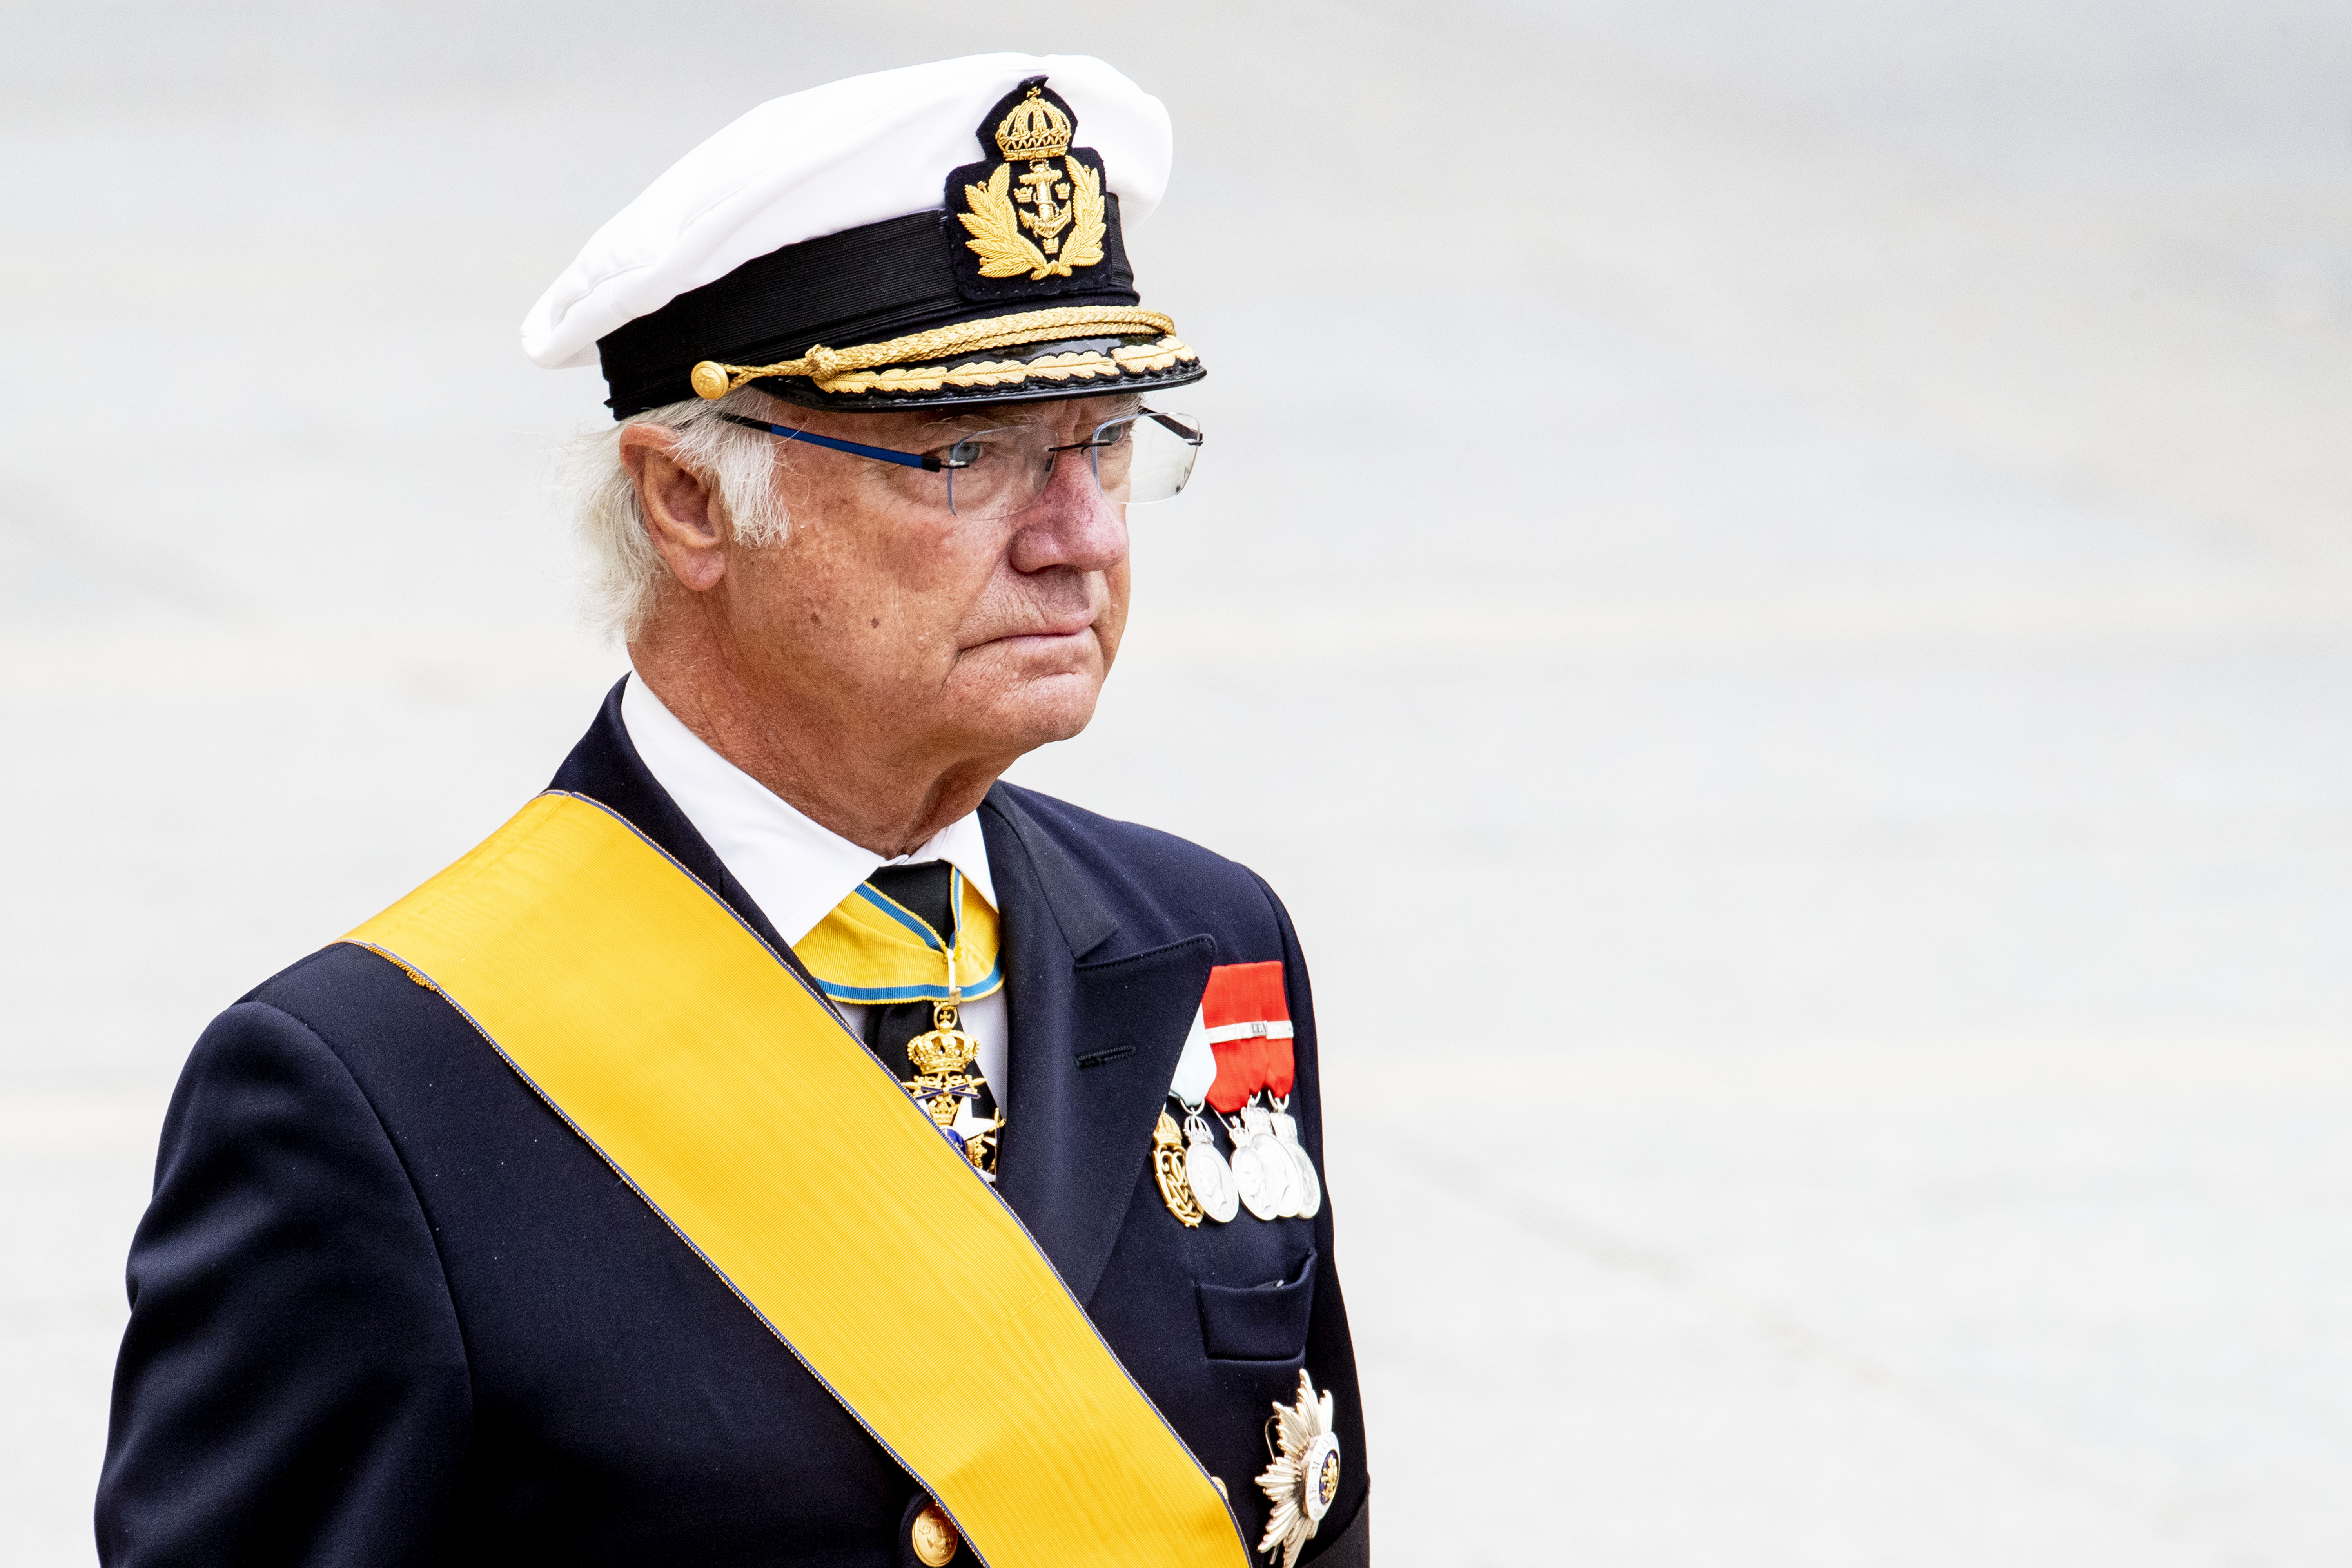 King Carl Gustaf of Sweden attend the funeral of Grand Duke Jean of Luxembourg on May 04, 2019 in Luxembourg.